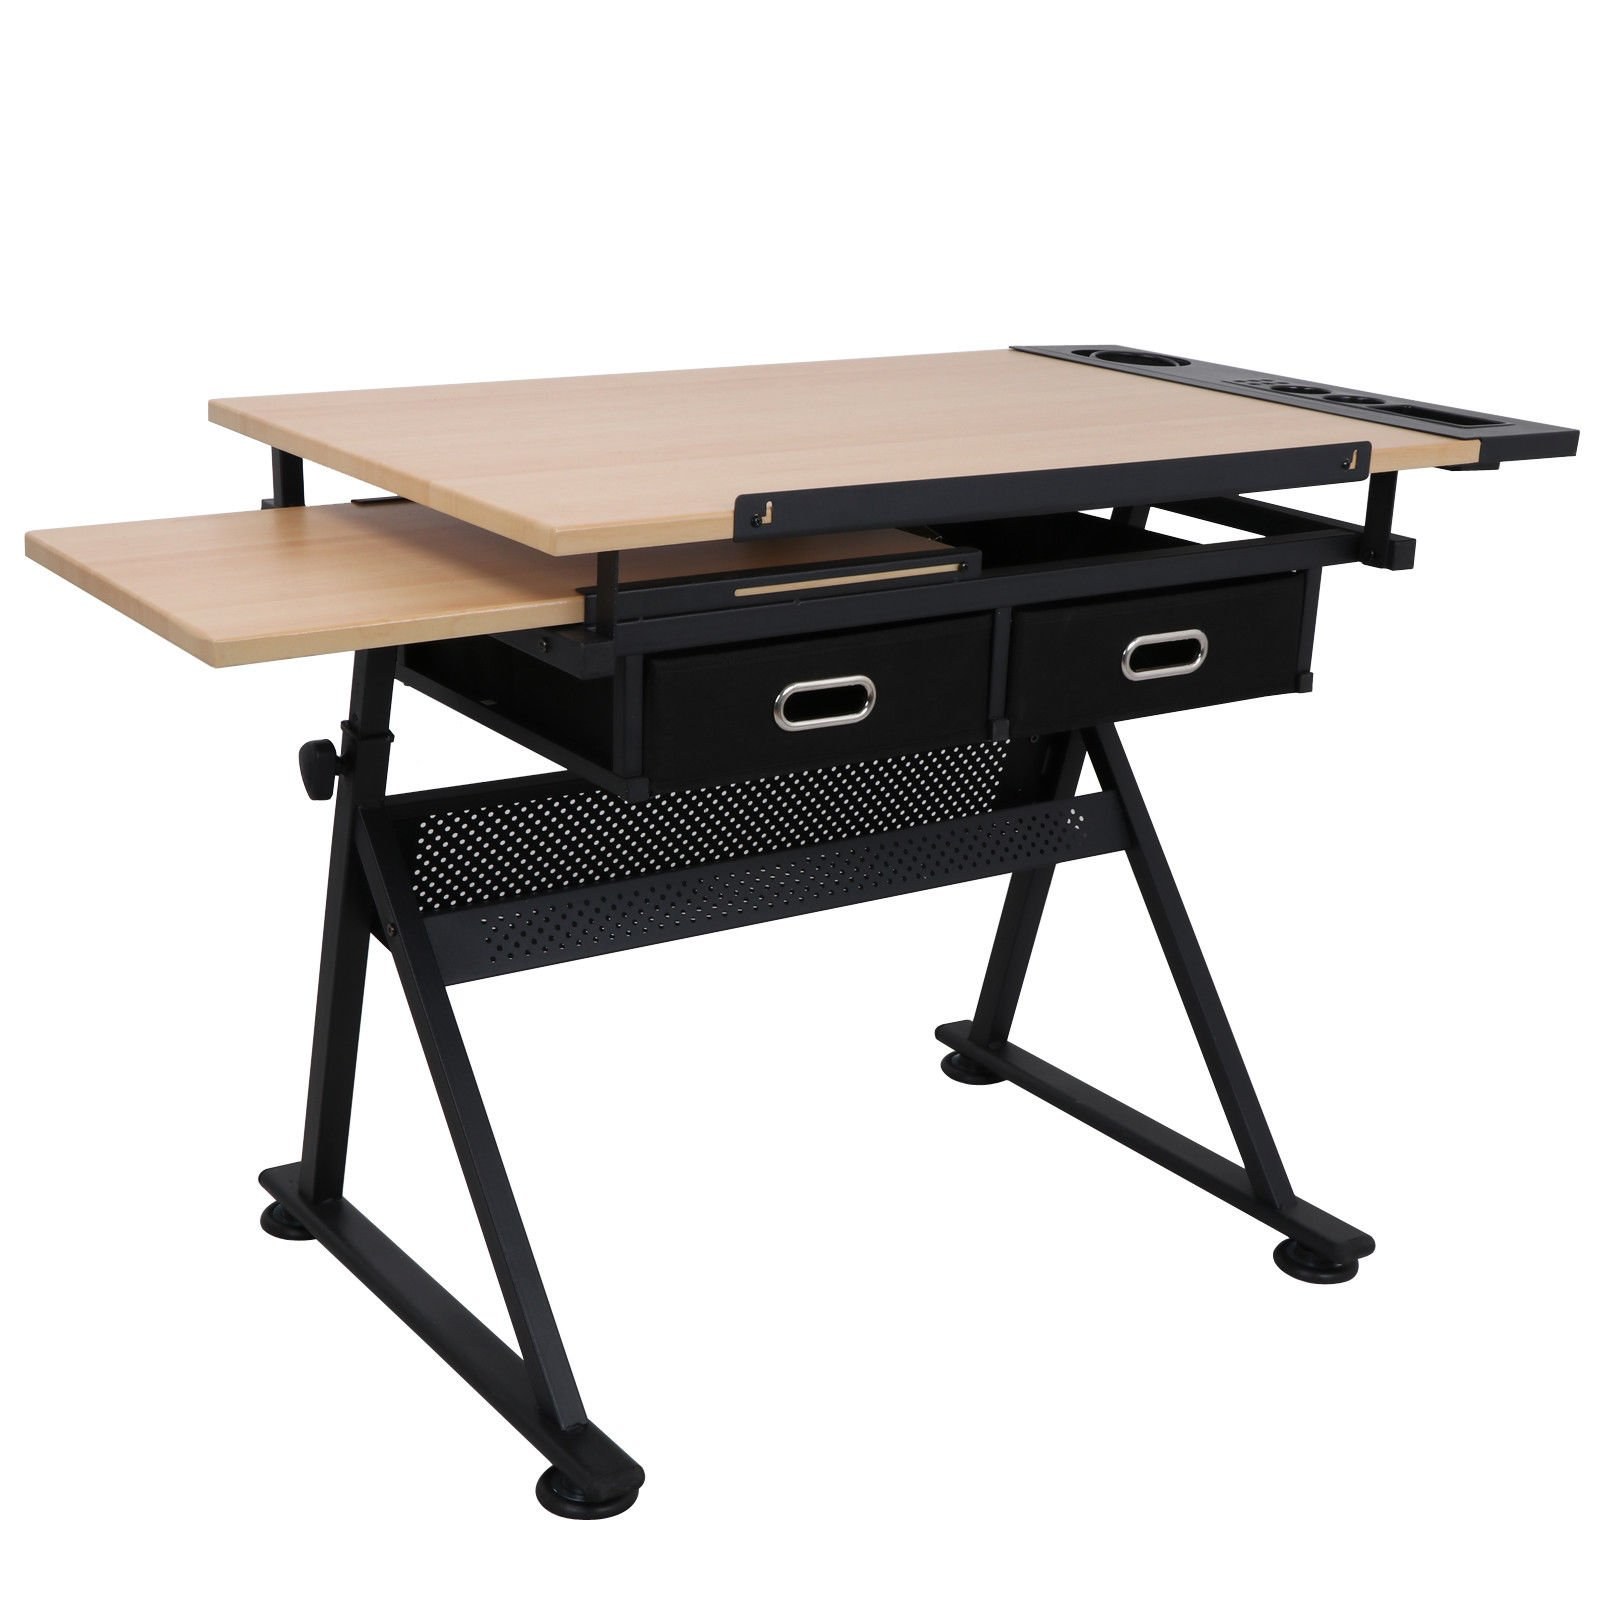 Tilting Tabletop Height Adjustable Drawing Desk with Padded Stool 2 Spacious Drawers Tools Storage Painting Drafting Writing Reading Study Table Draftsman Art Craft Hobby Studio Architect Office Work by HPW (Image #3)